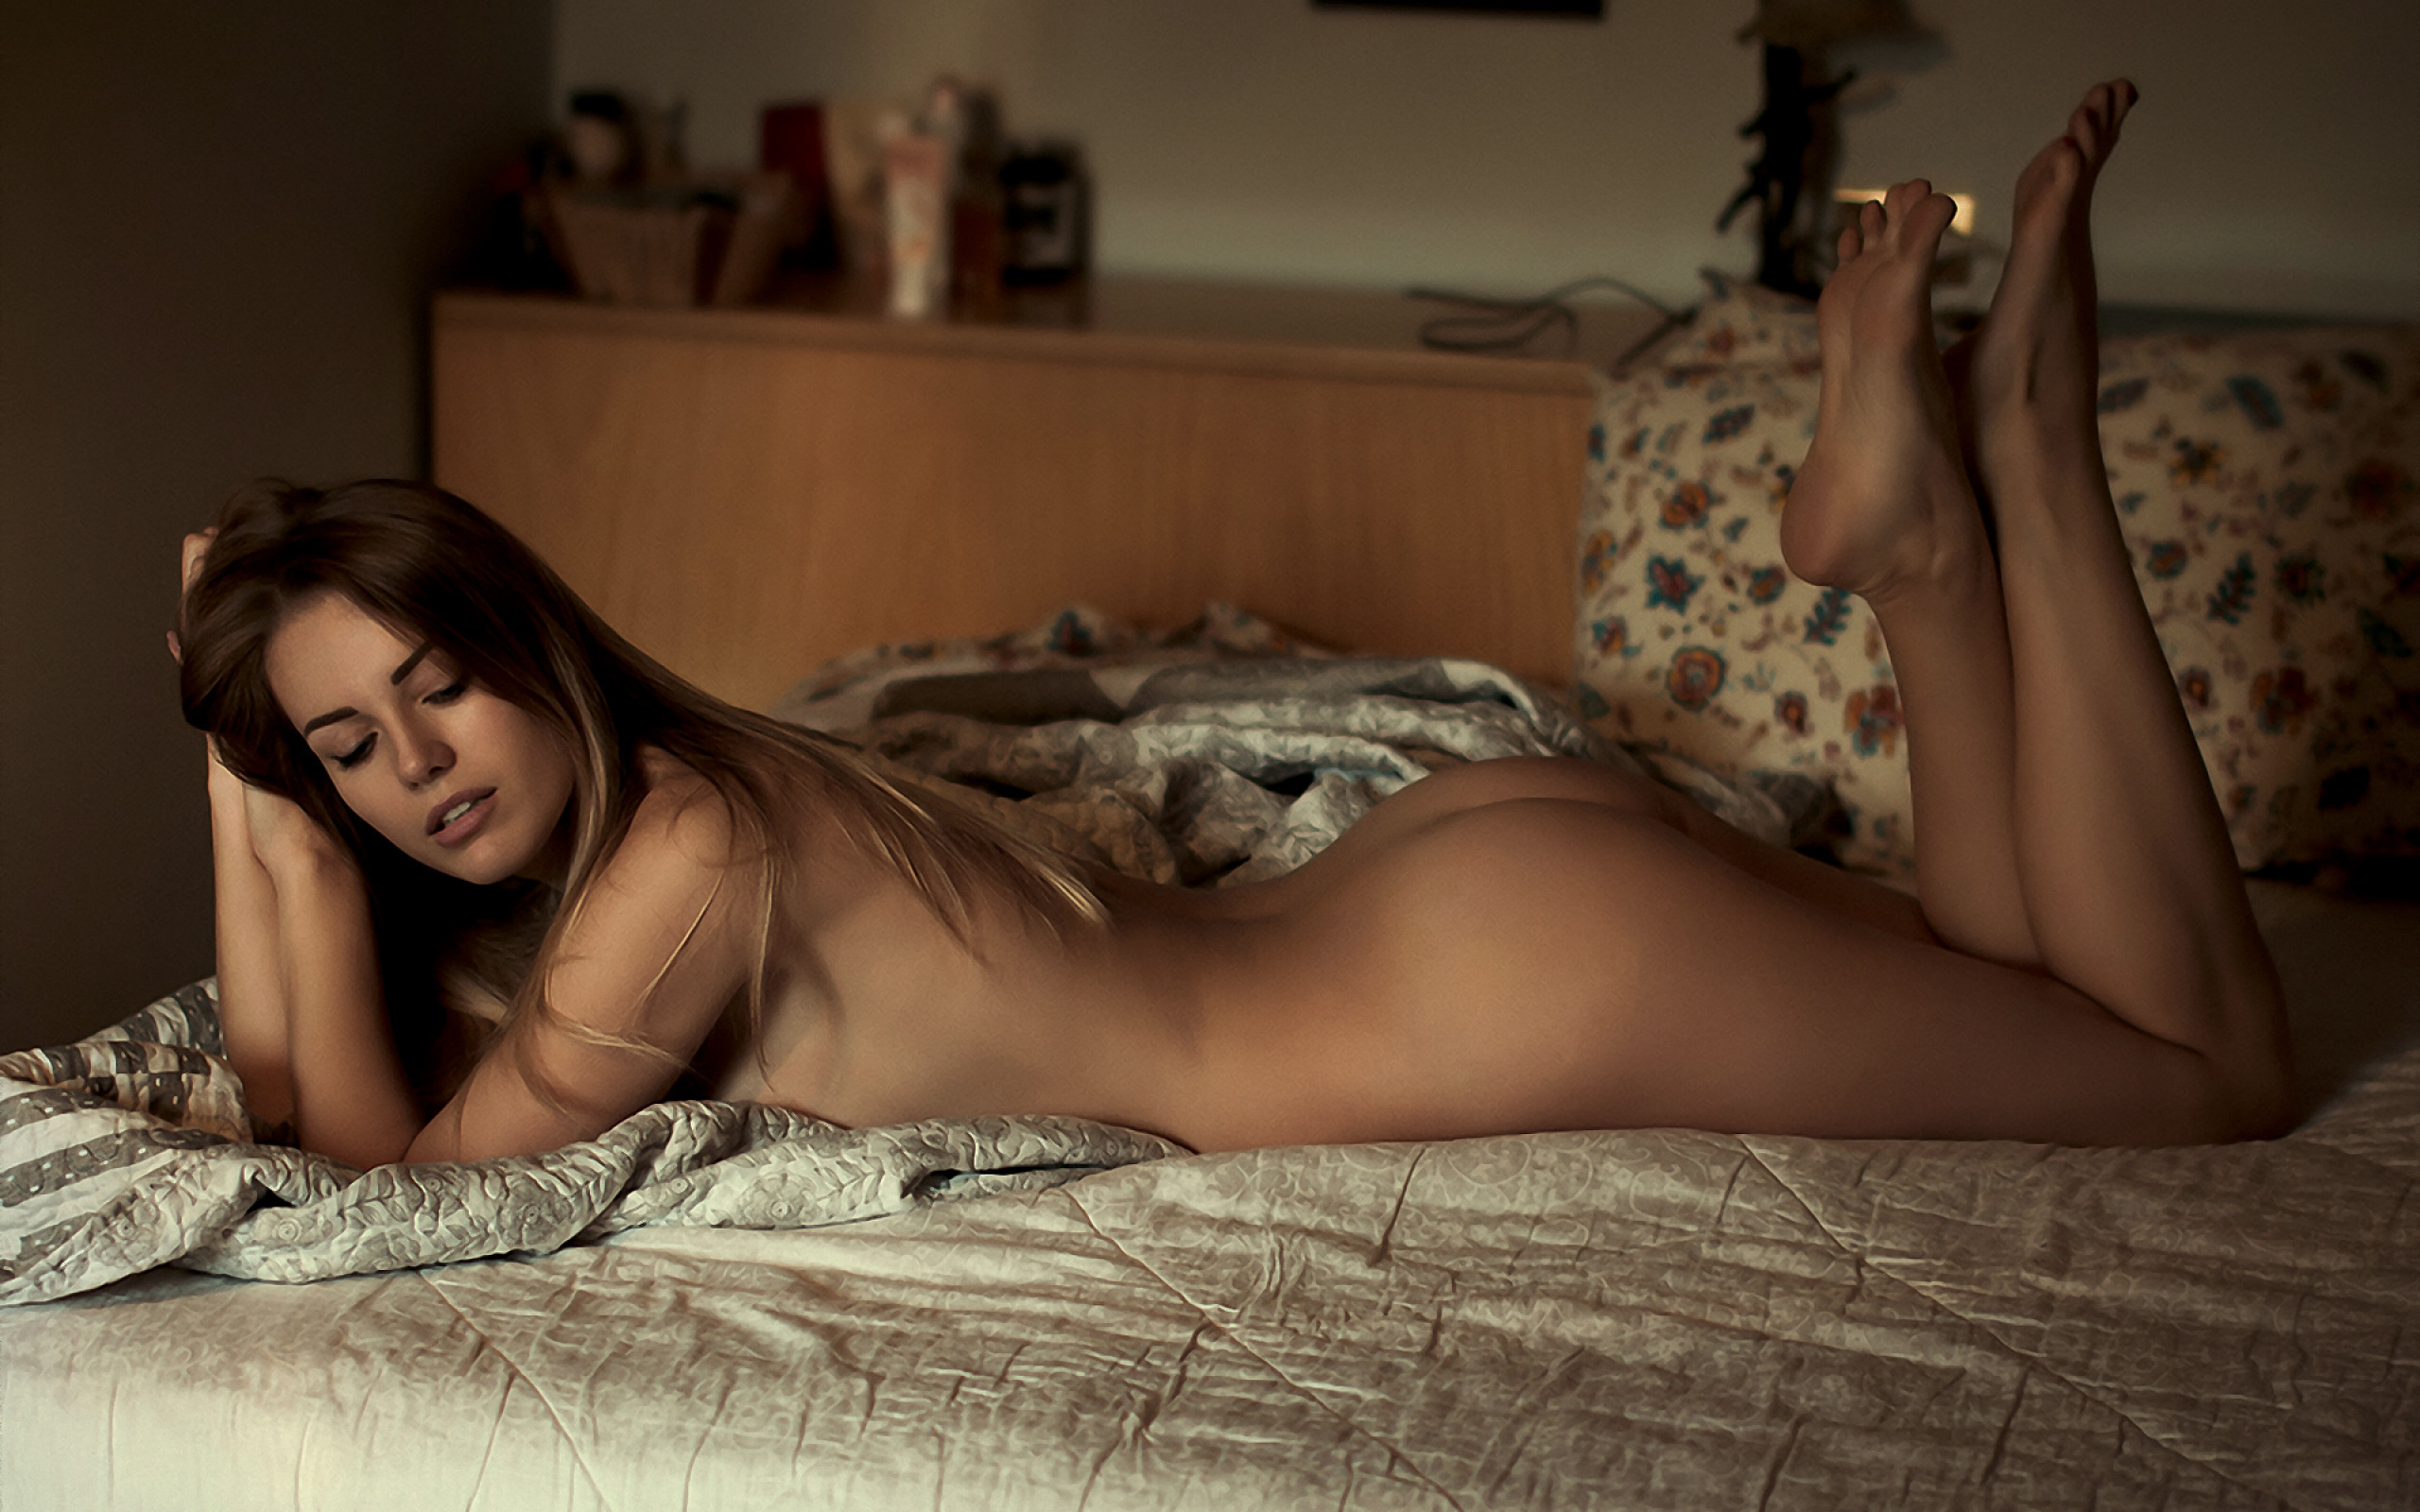 Naked chicks in the bedroom, bianca beauchamp nude white